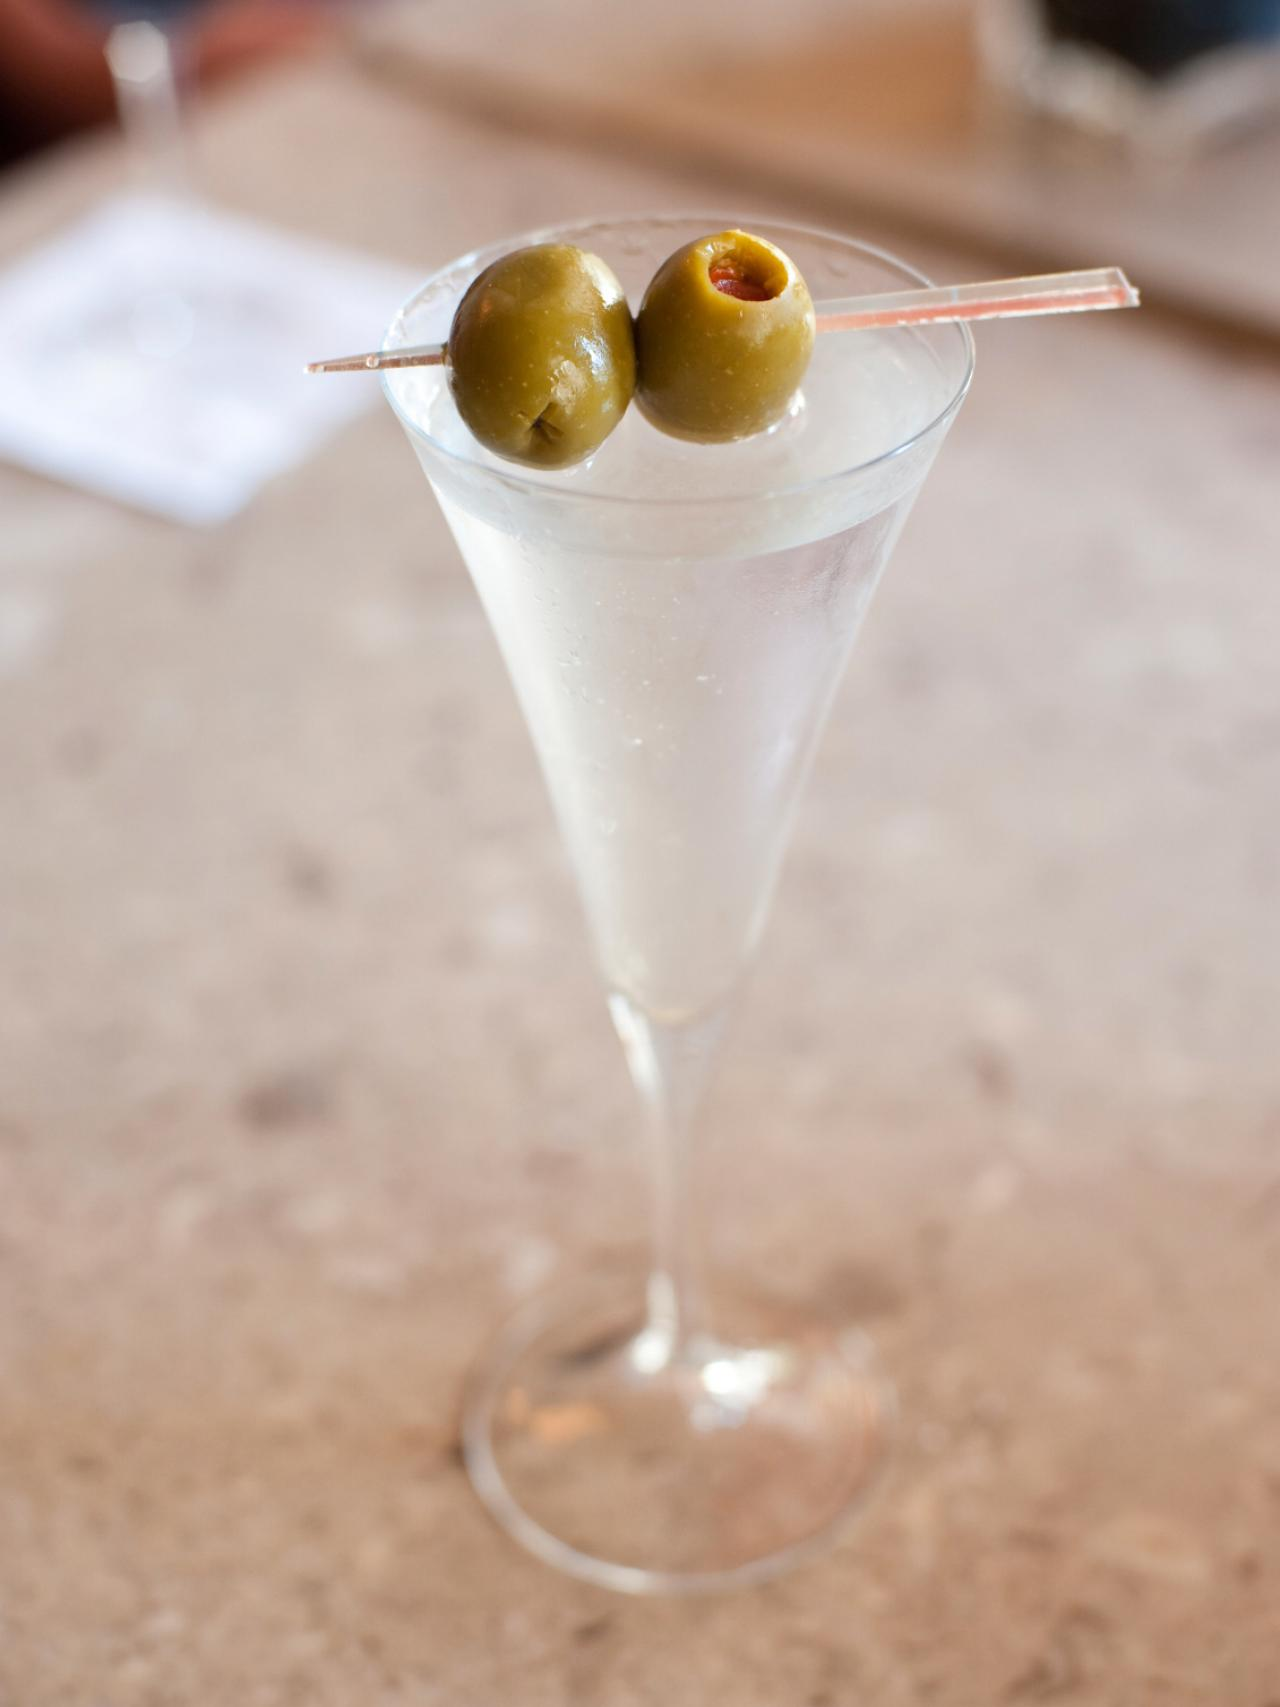 Dry gin martini recipe hgtv for Best gin for martini recipes